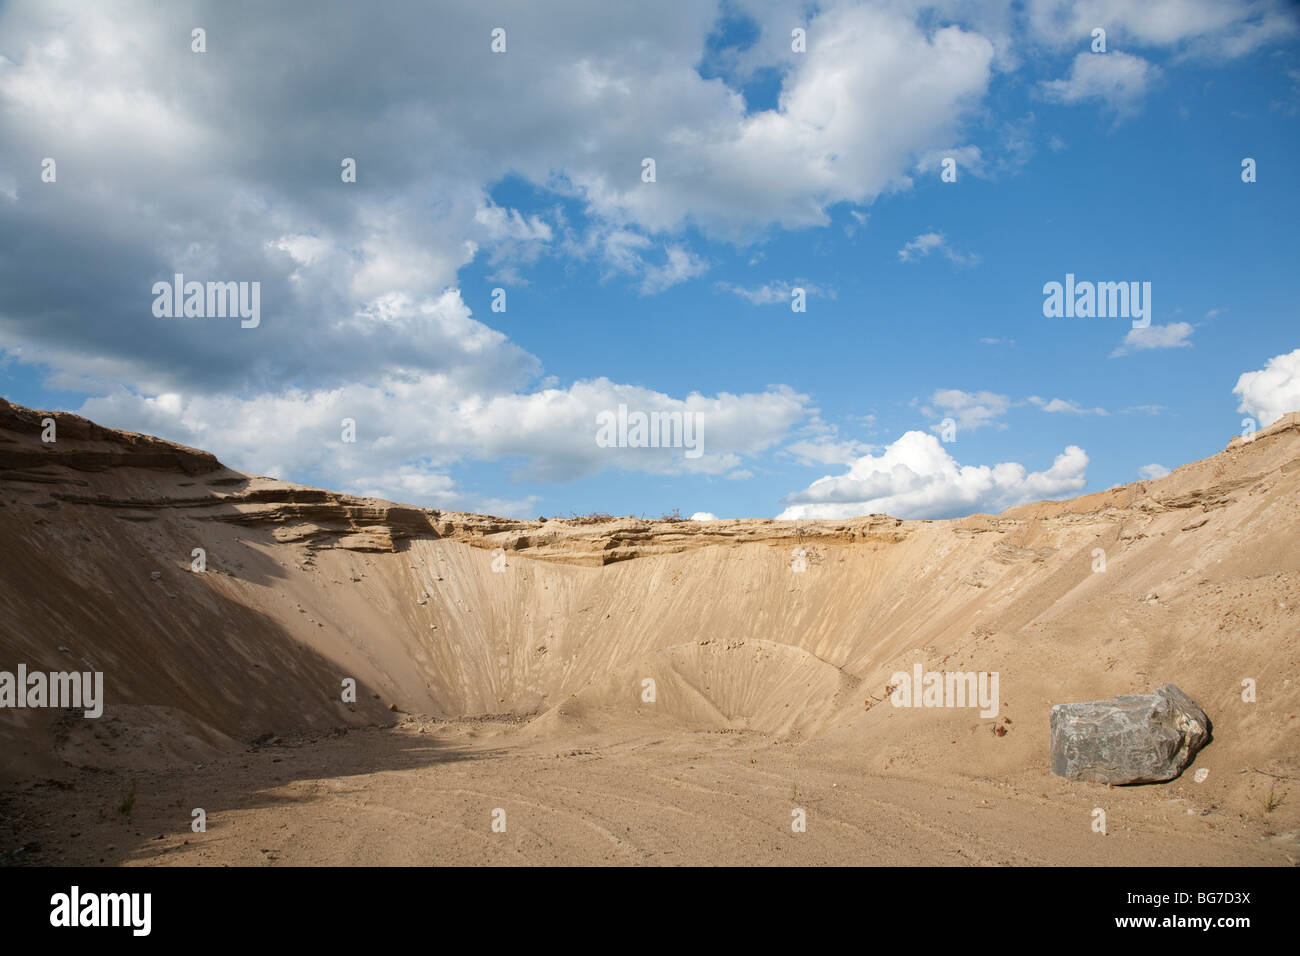 Wall of a sandpit on a sandy ridge , Finland - Stock Image